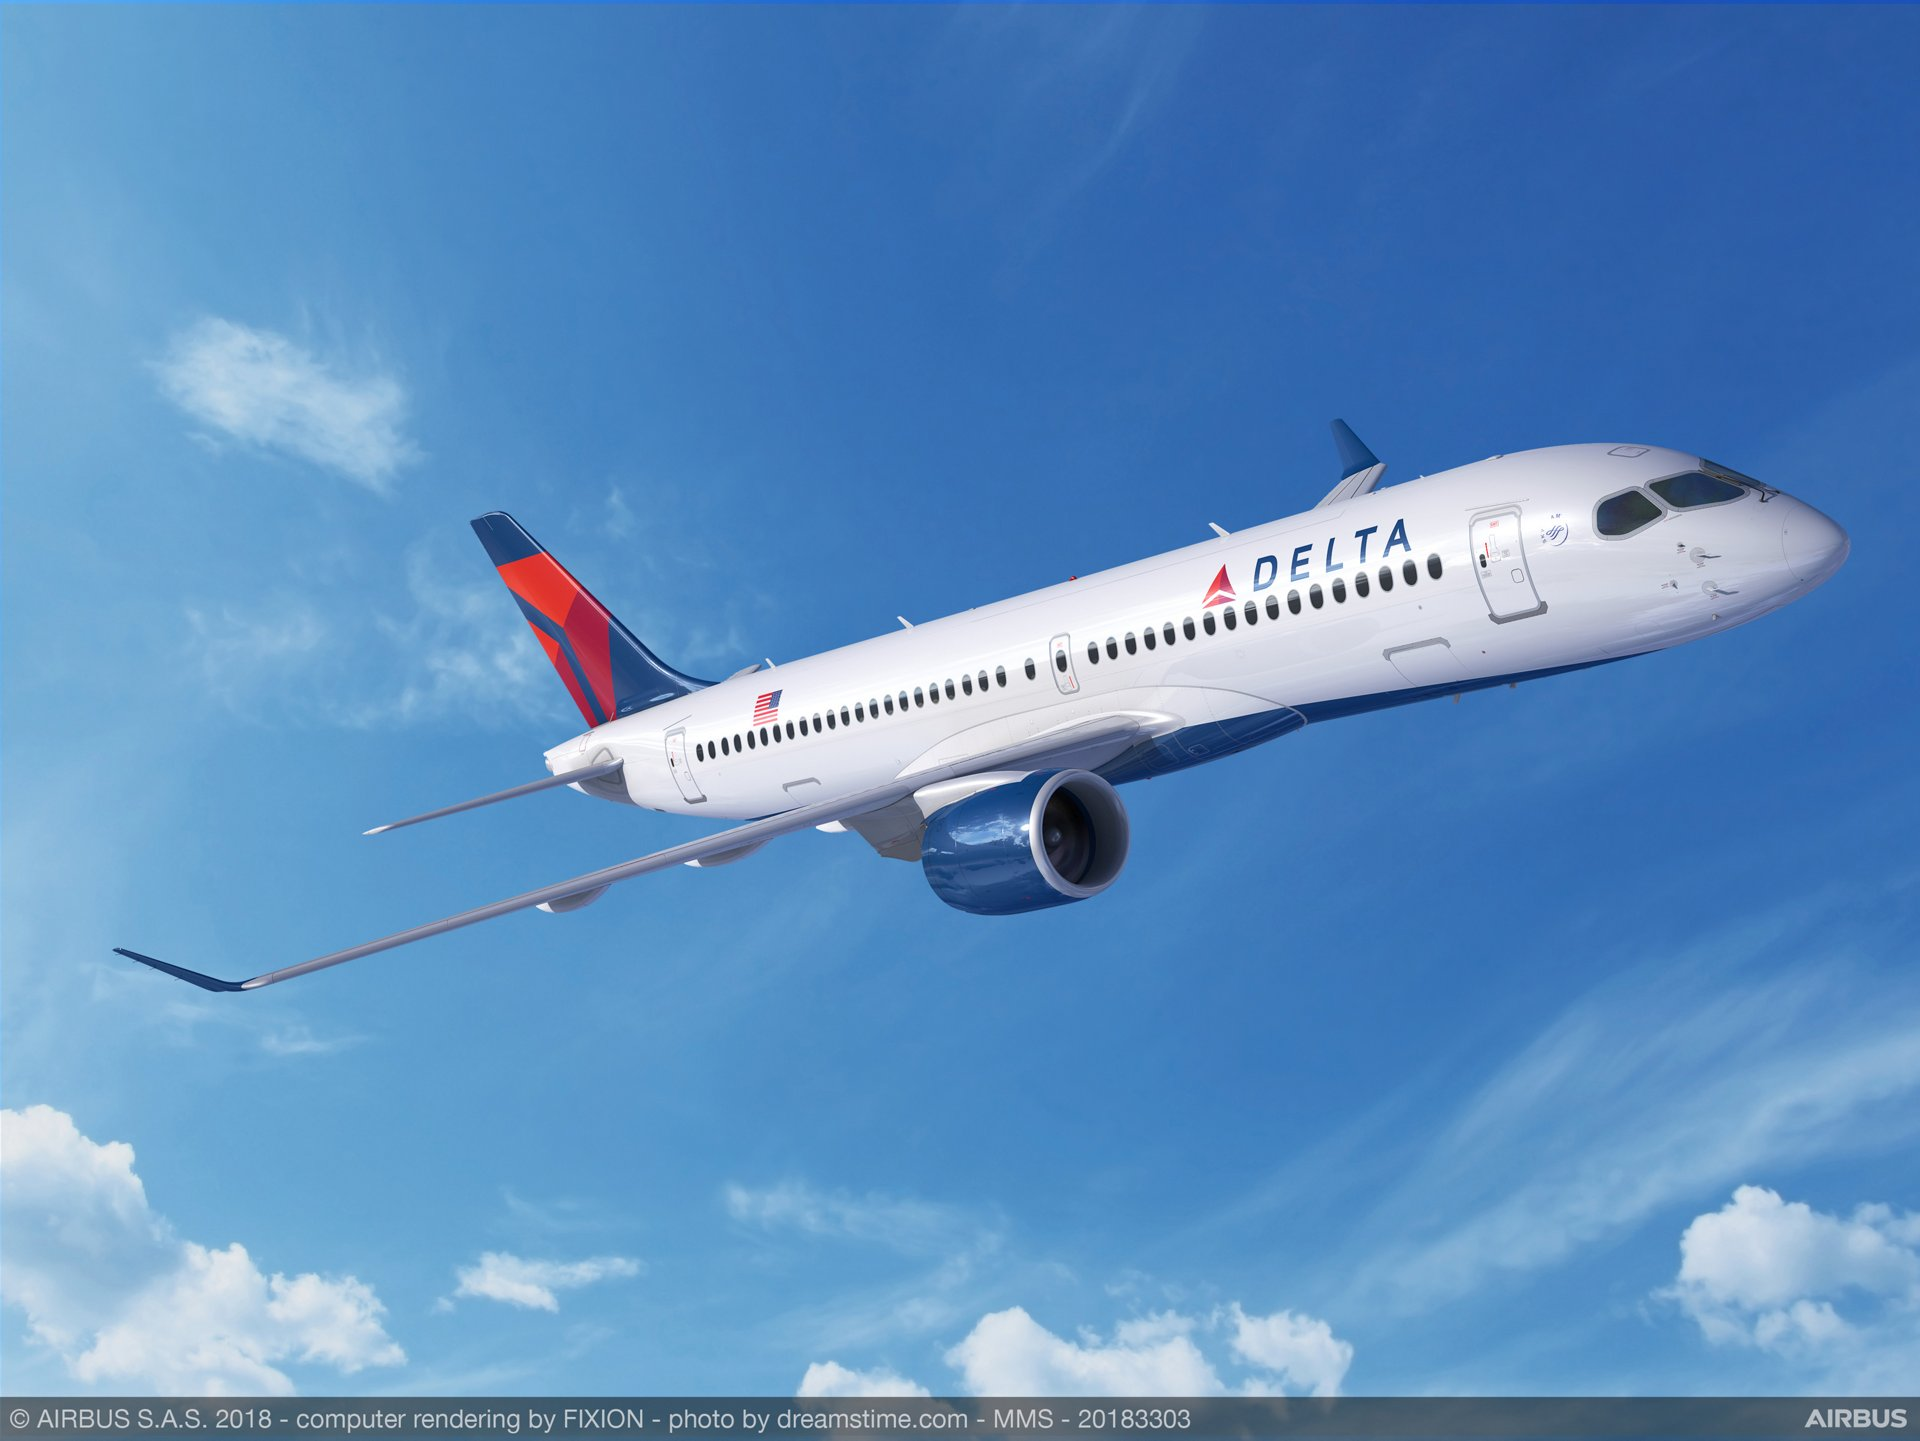 U.S.-based Delta Air Lines has booked a total of 90 Airbus A220 Family jetliners, including 50 of the longer-fuselage A220-300 variant